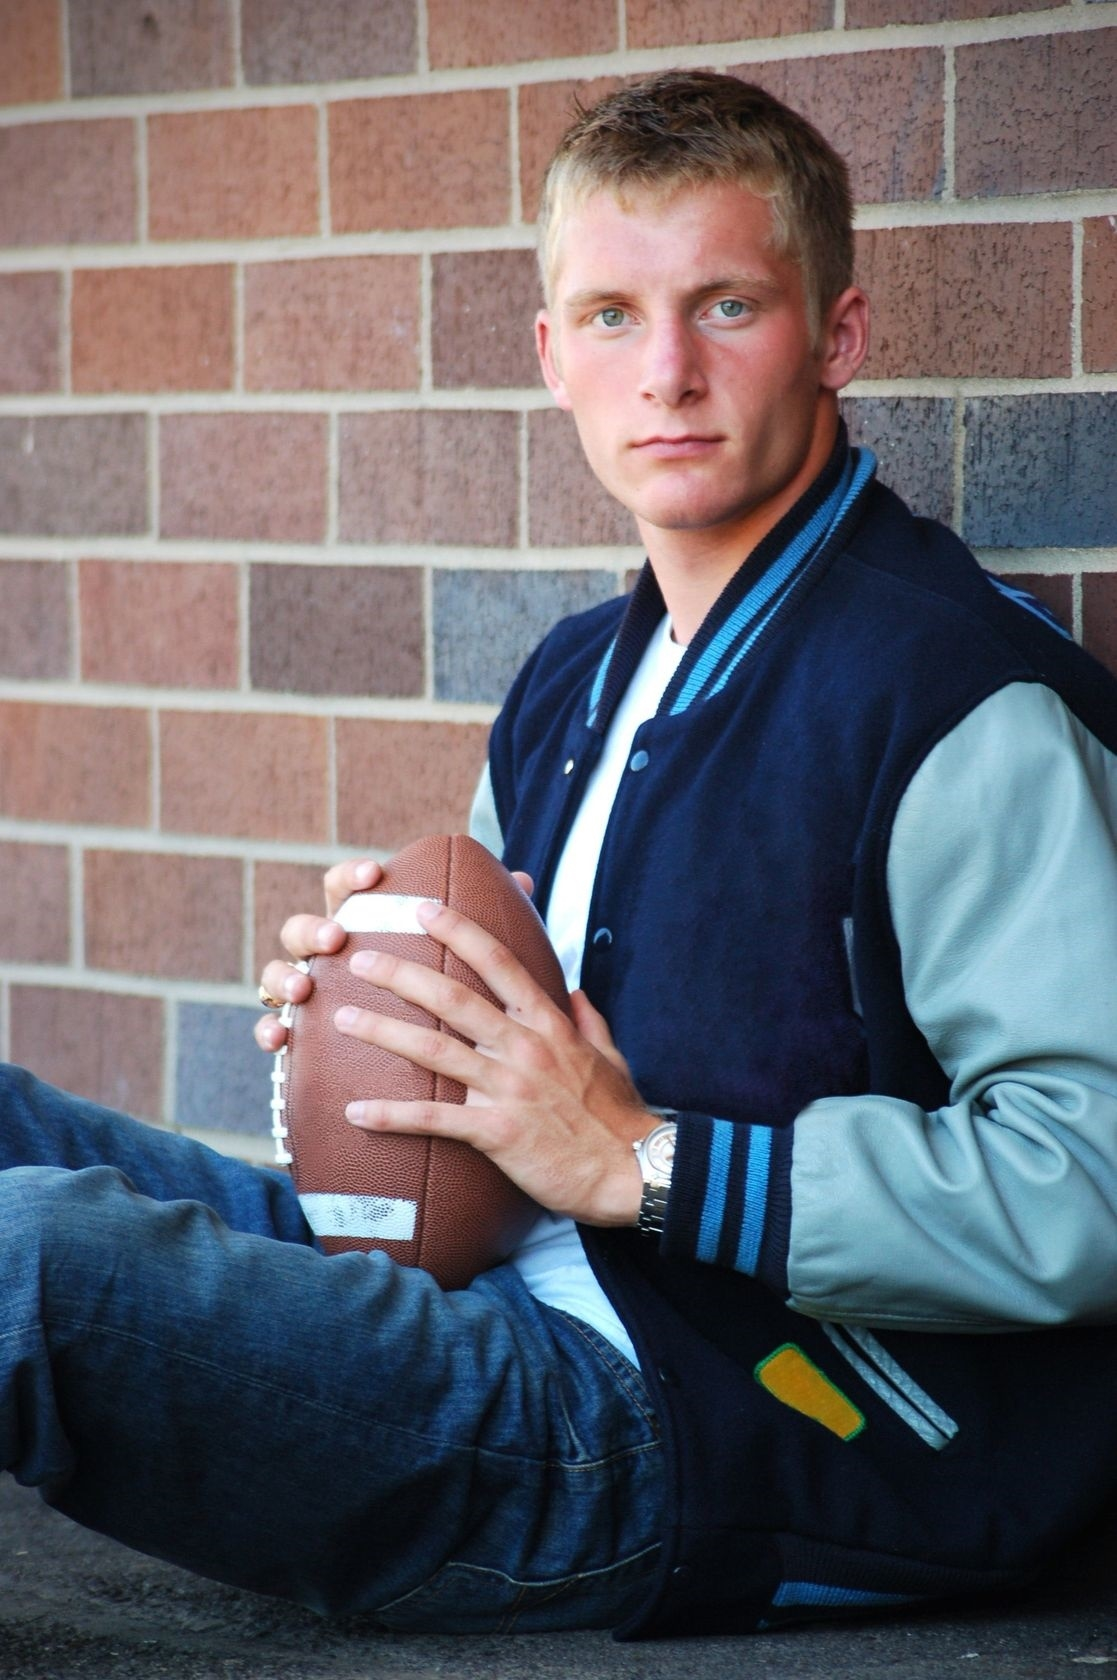 guy wearing a varsity jacket and holding a football